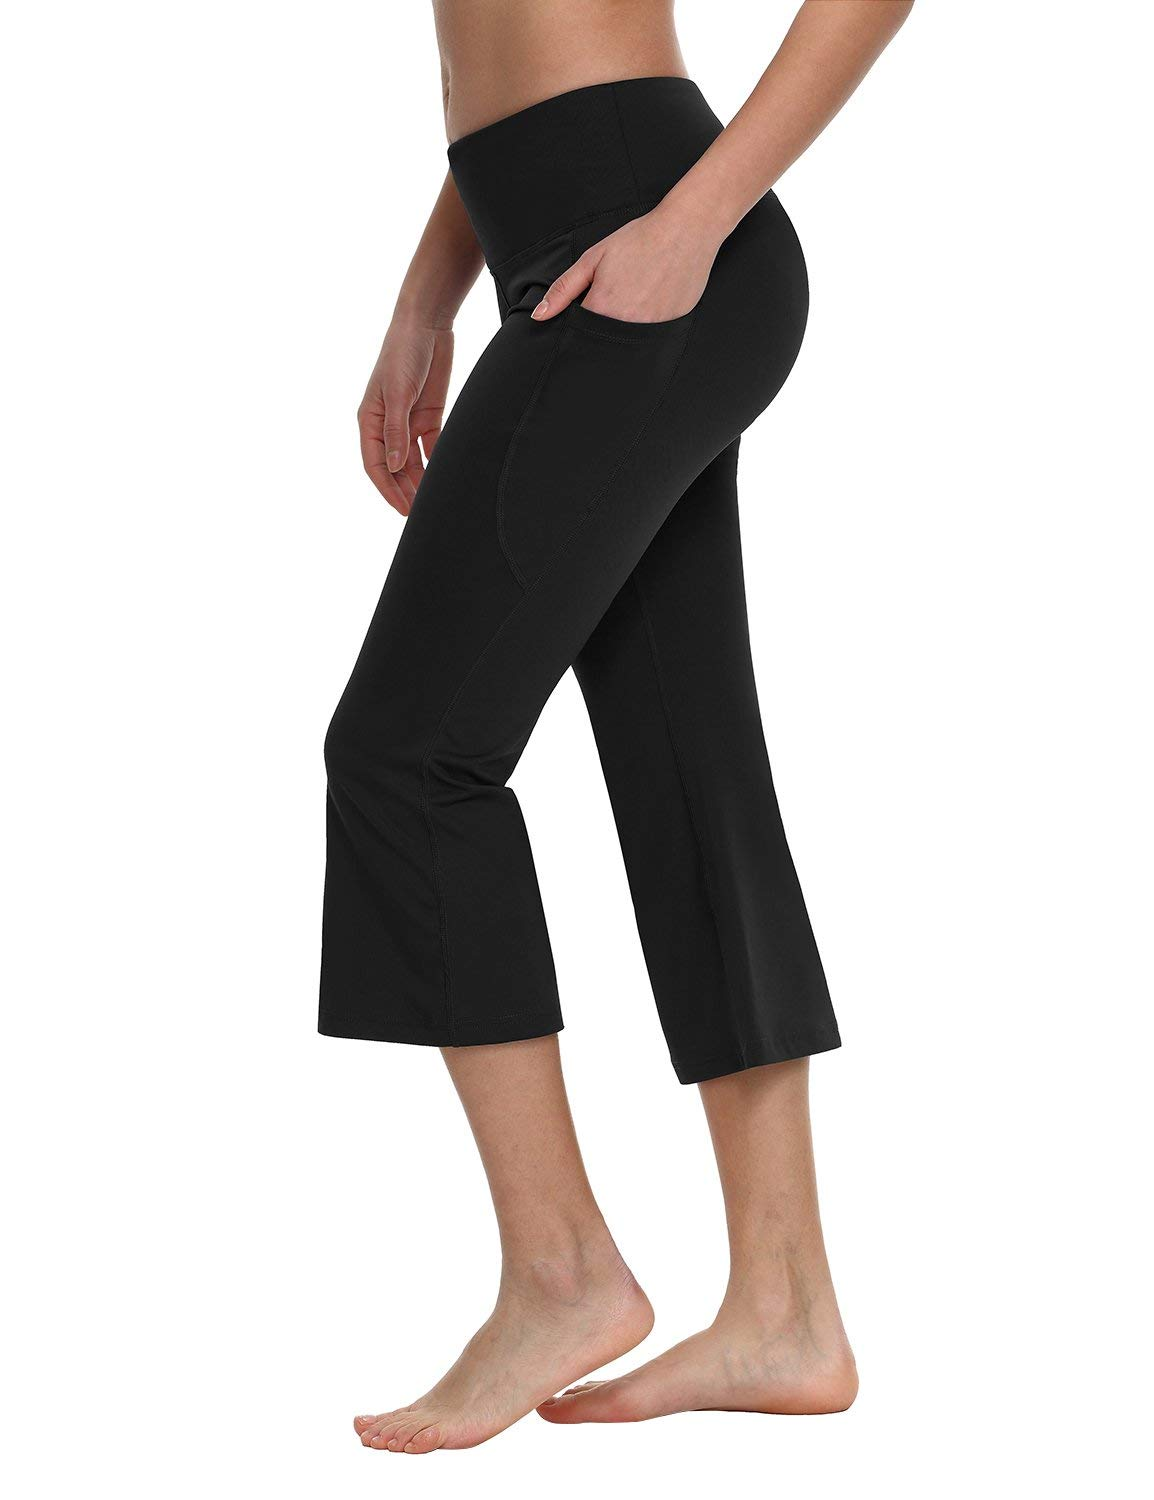 BALEAF Women's 21'' Yoga Capri Pants Flare Workout Bootleg Crop Leggings Black XL by BALEAF